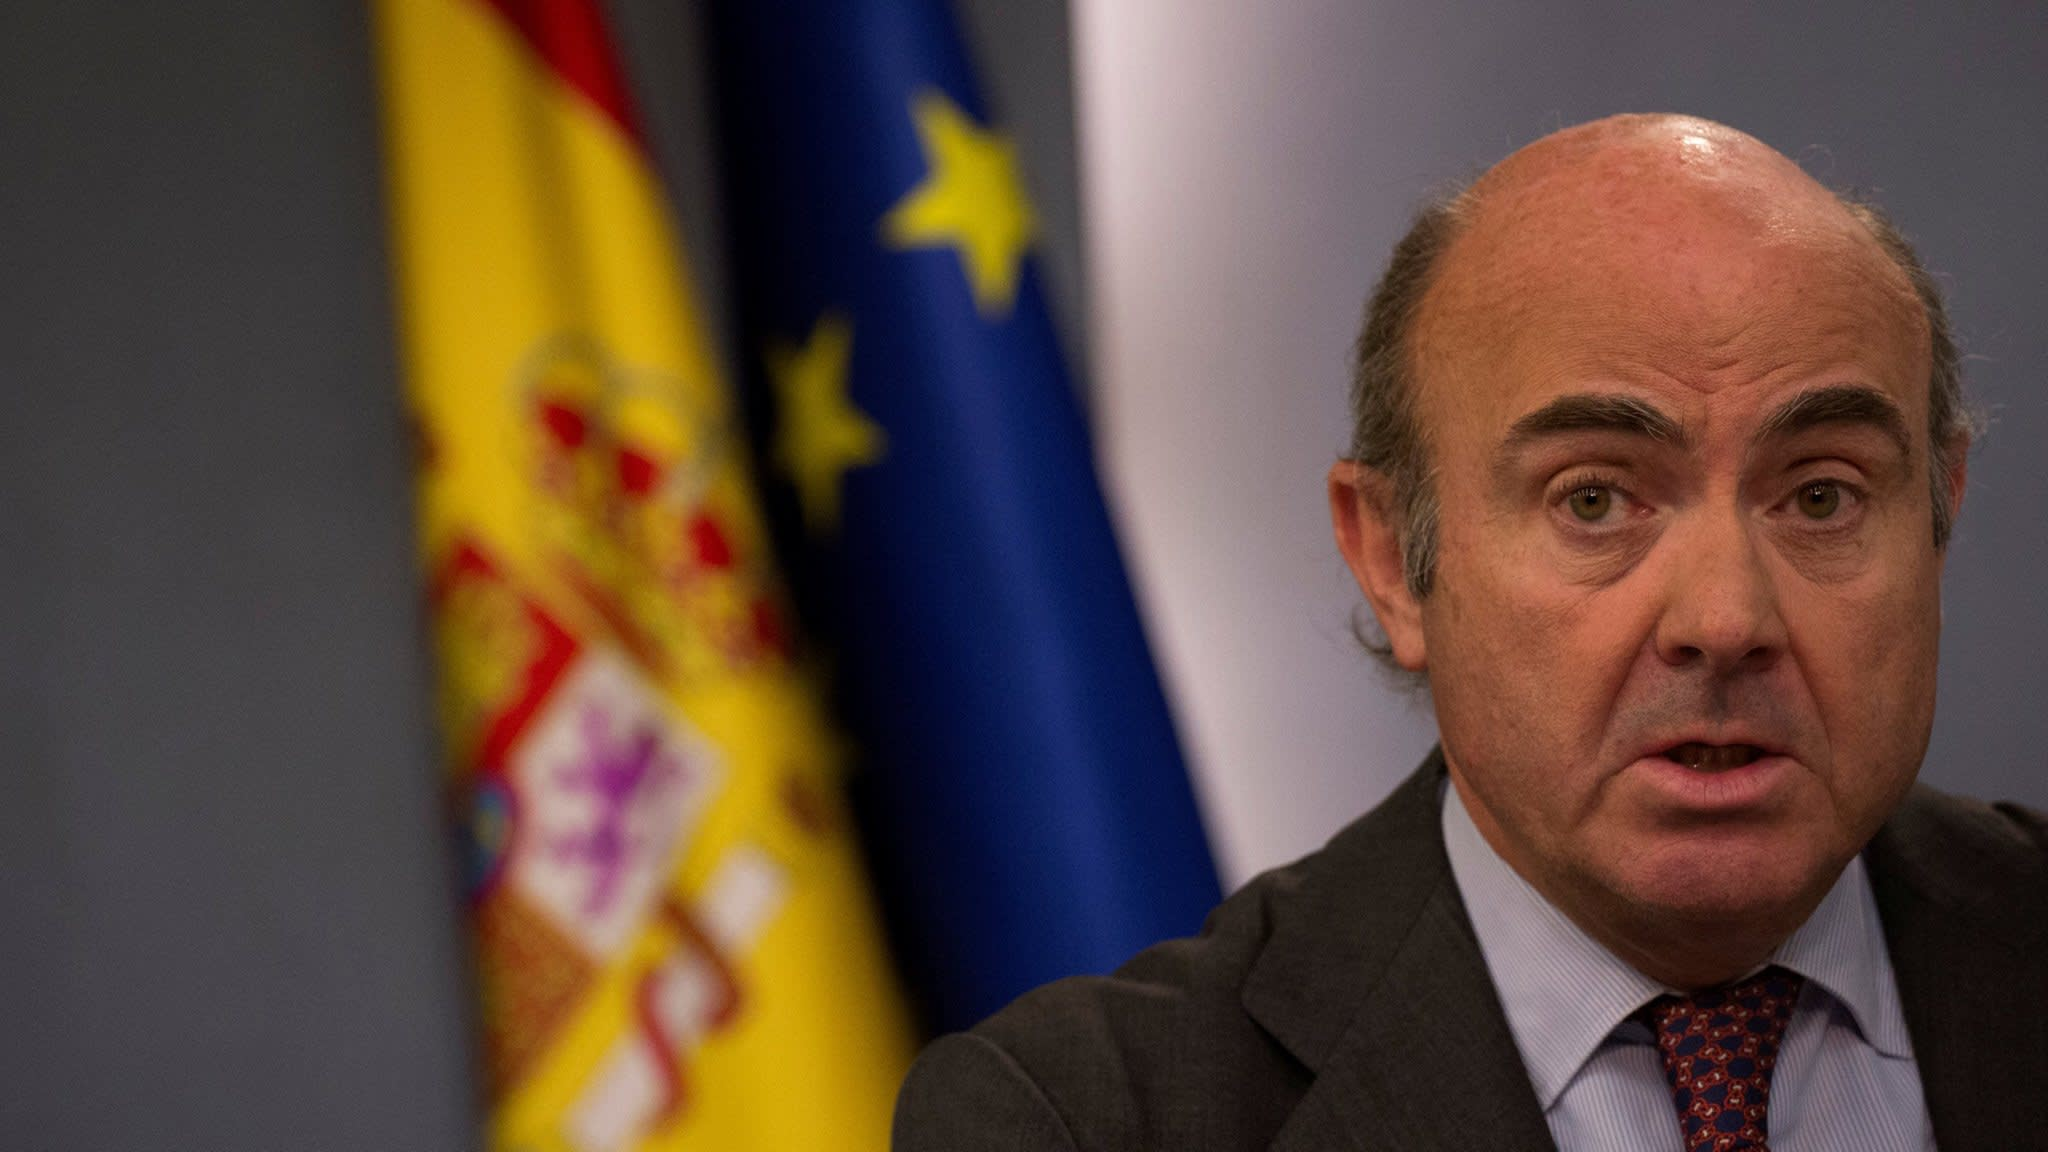 Spanish minister lands top ECB post after rival pulls out